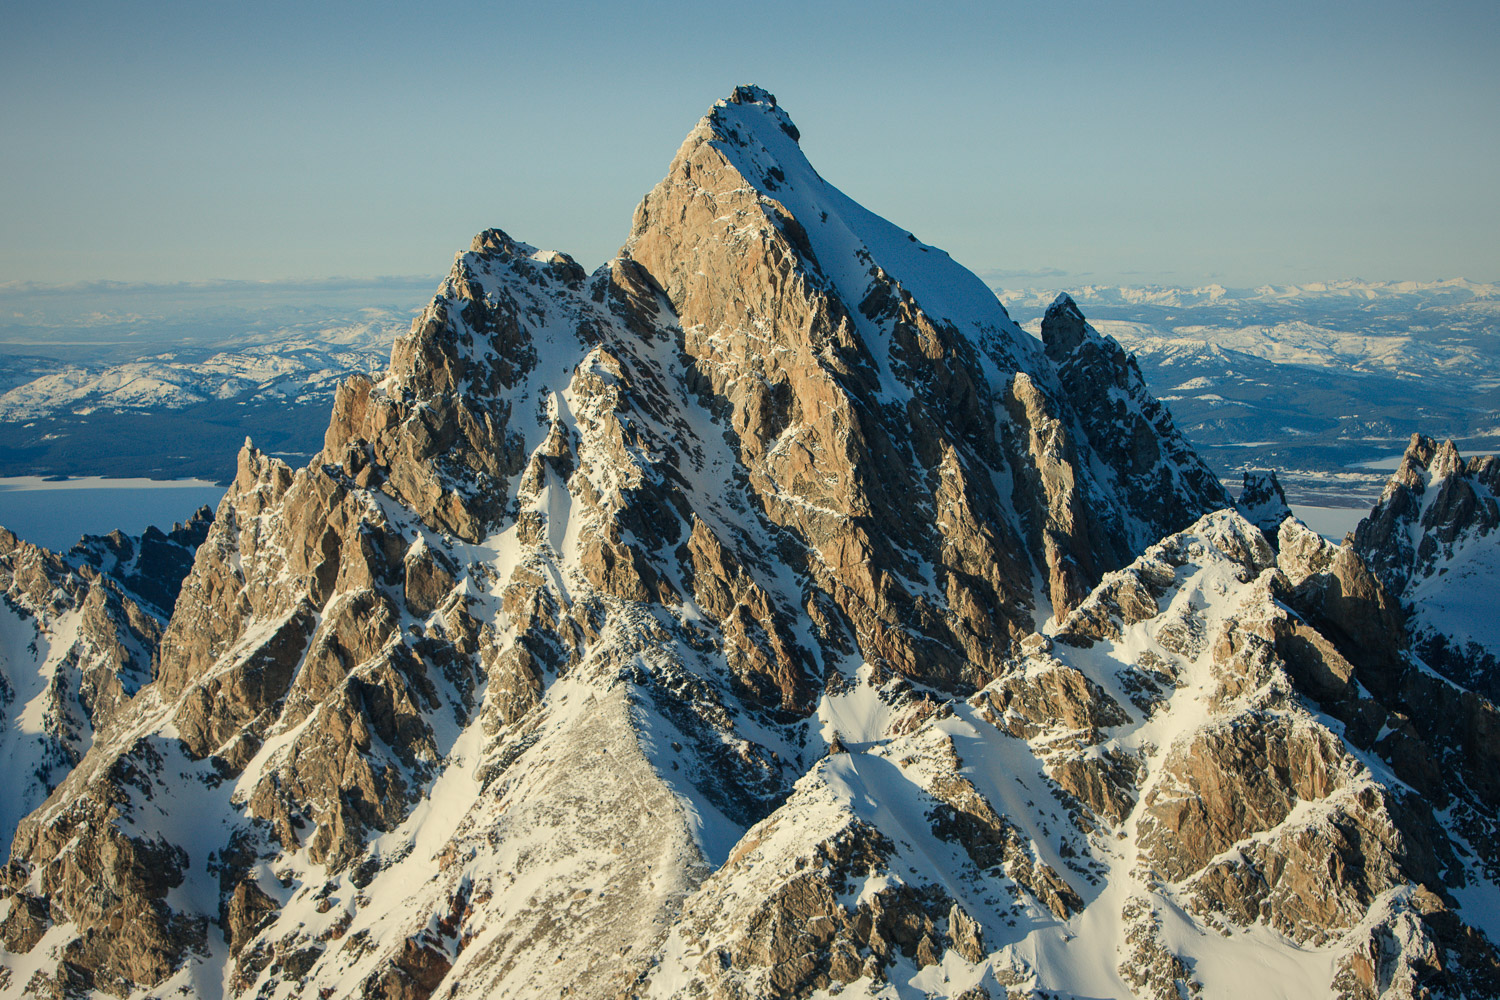 Aerial photograph of the Teton range, Grand Teton National Park, Wyoming